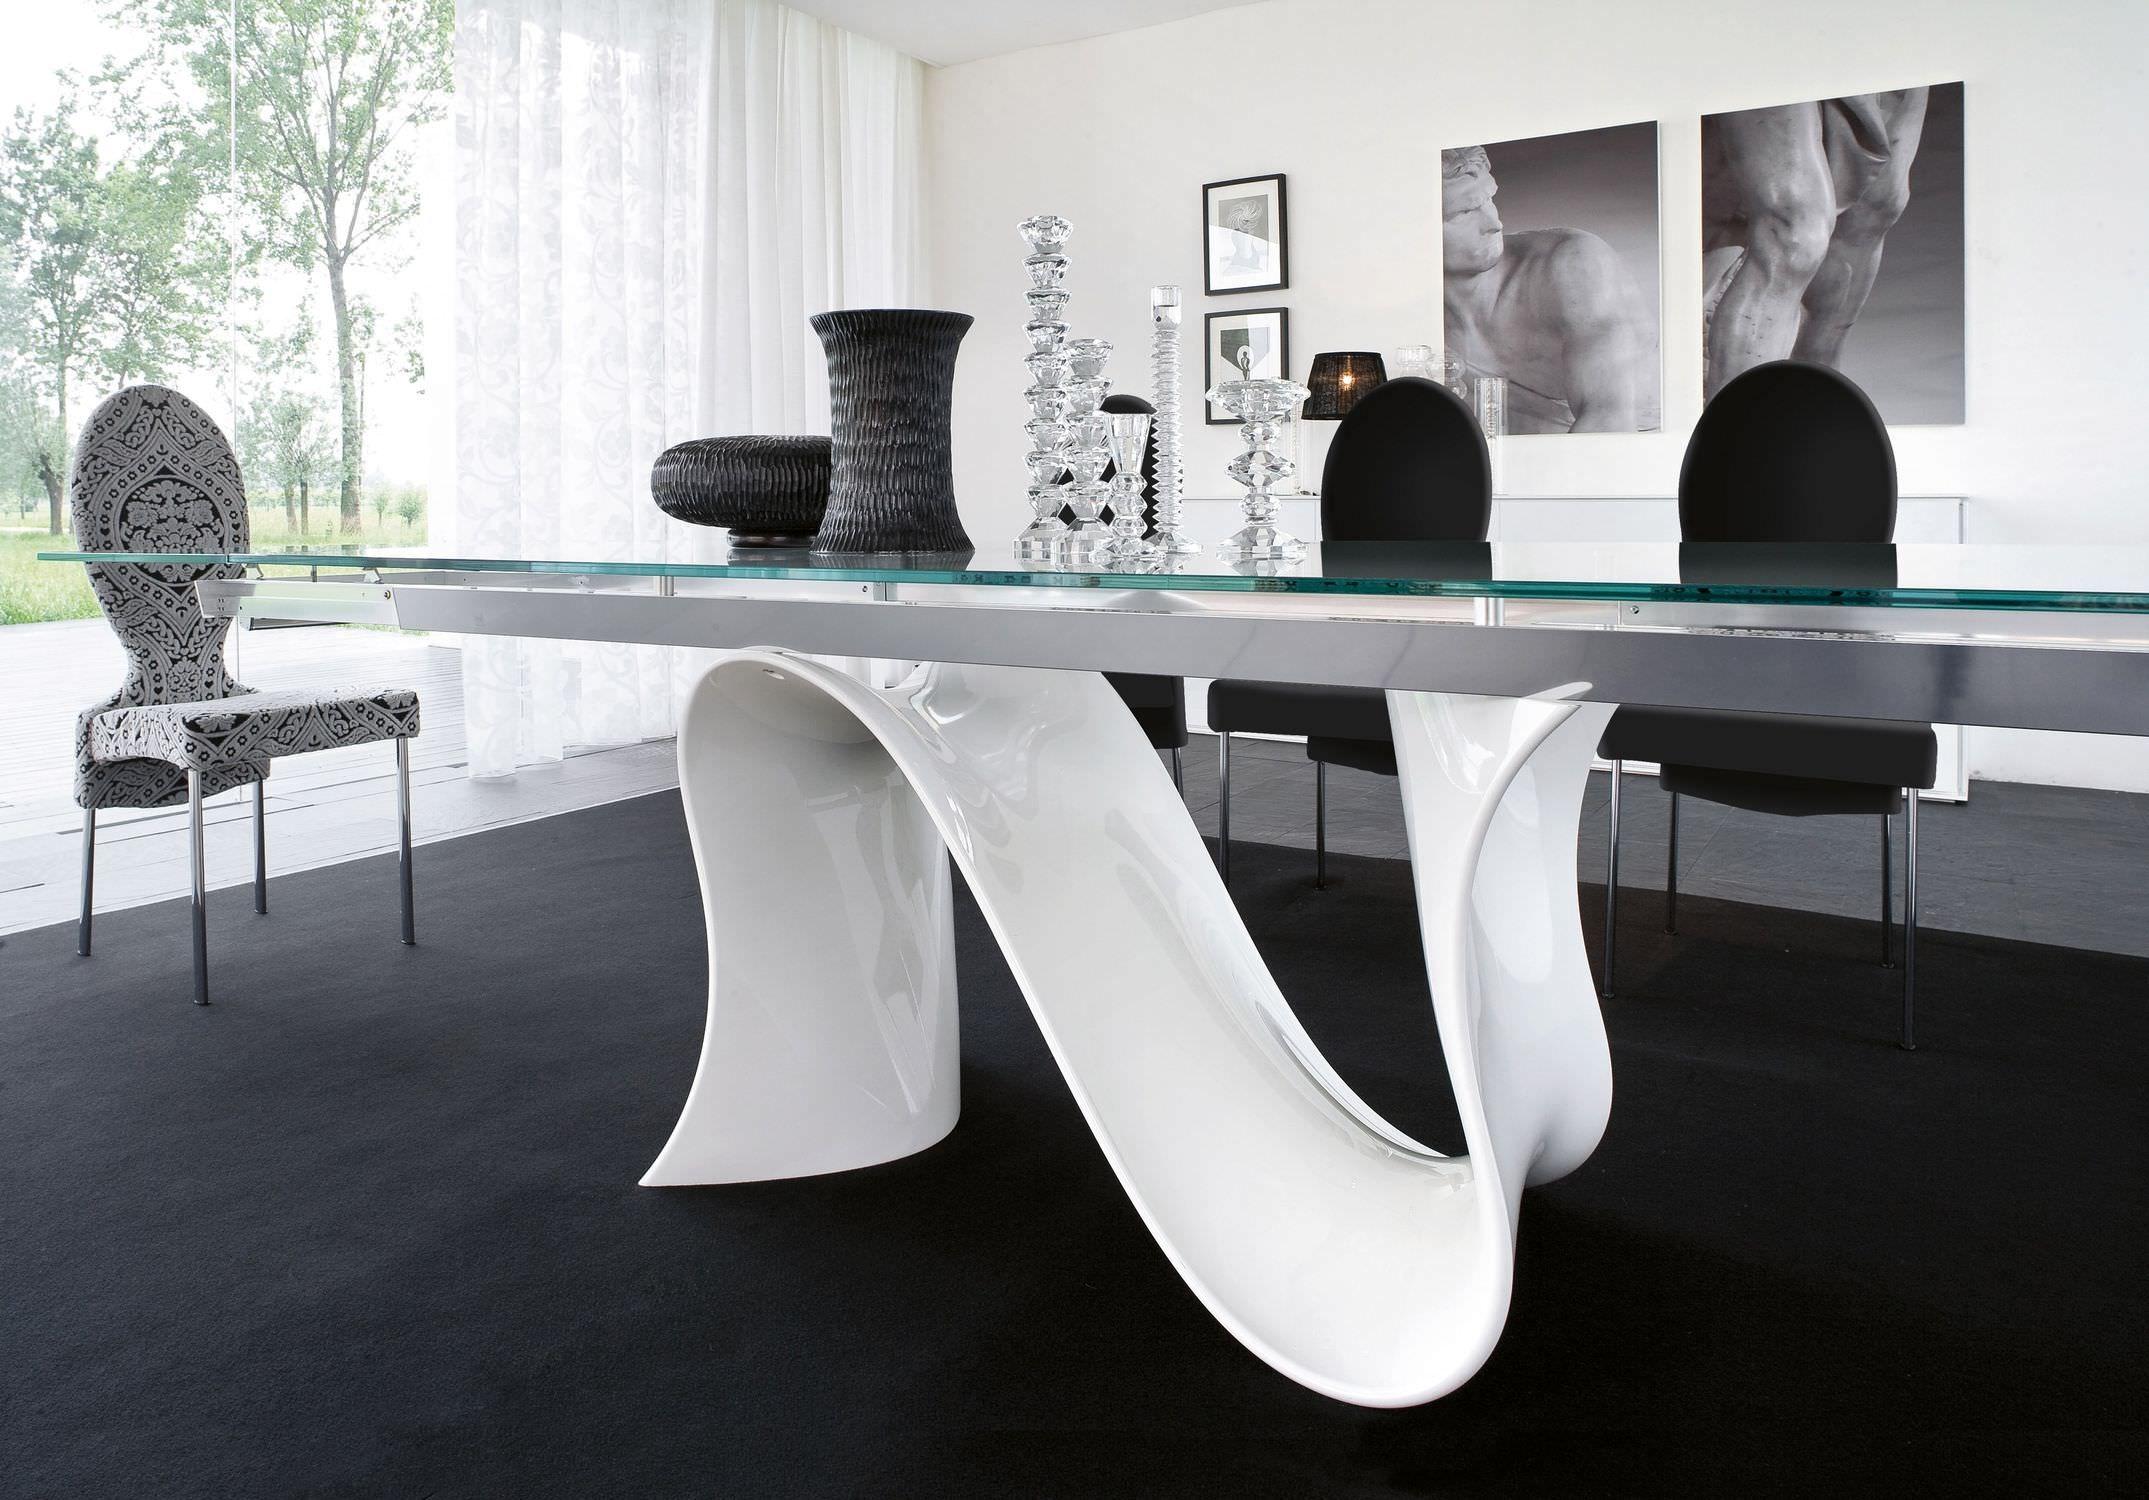 Marvellous Glass Top Dining Table Design Ideas By Long Square With N Curving Shape